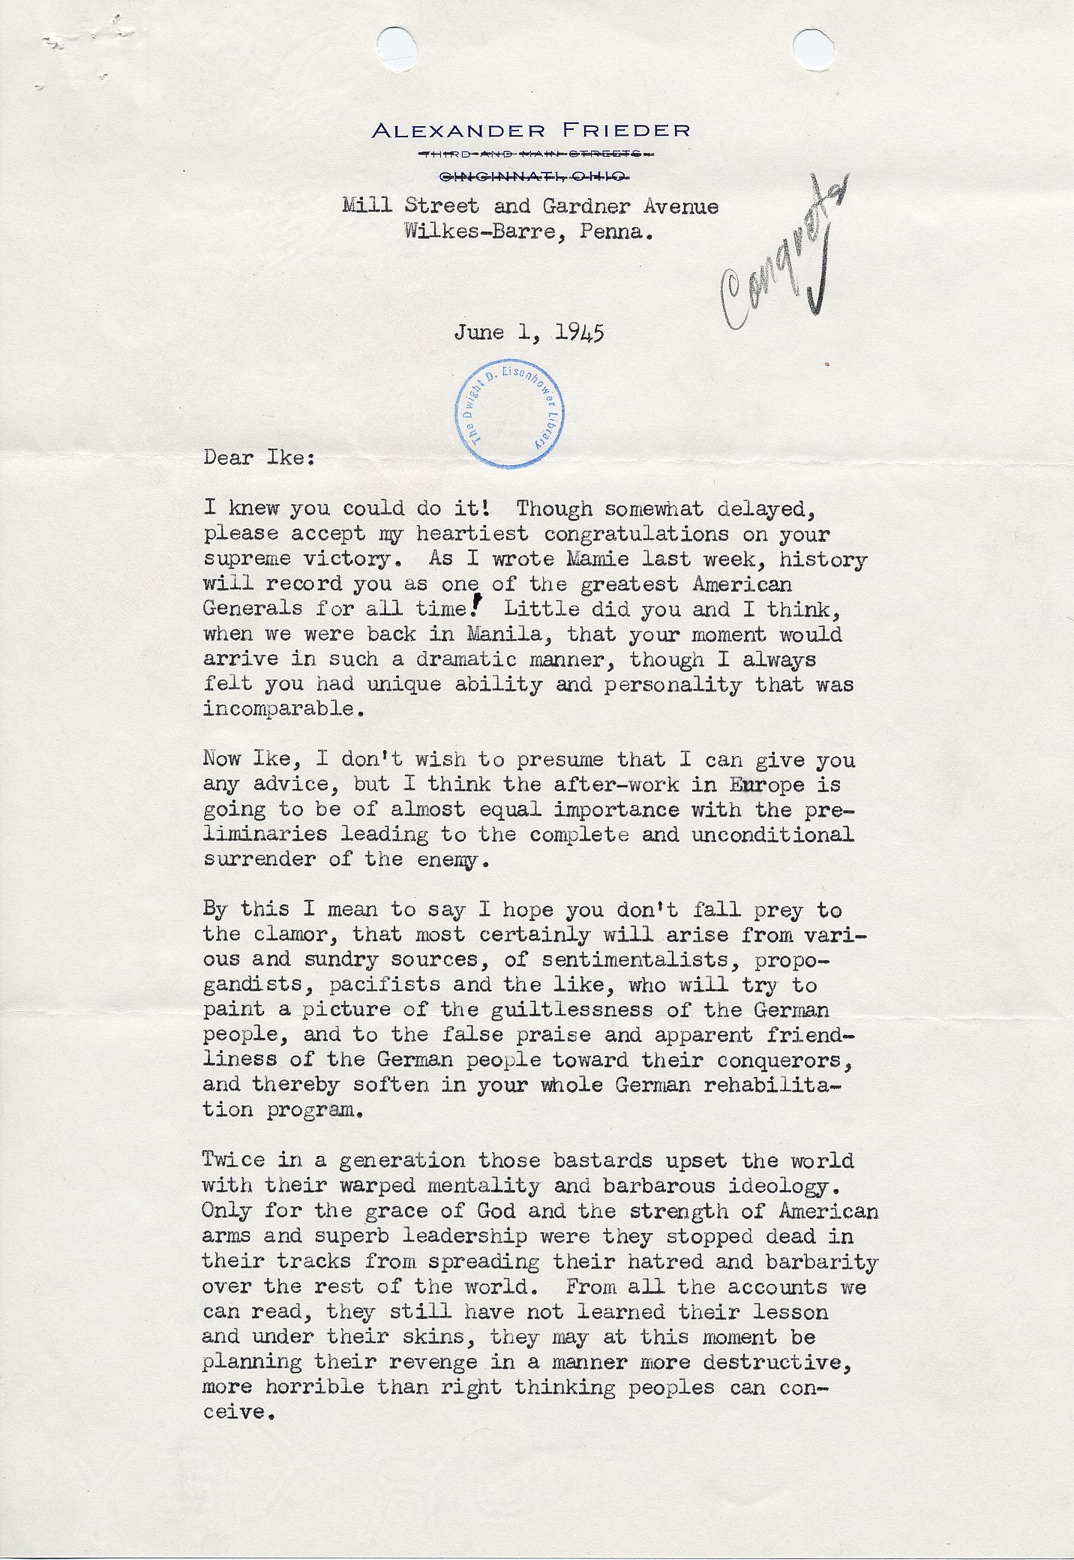 Alex Frieders Powerful Letter Of Congratulations To Eisenhower June 1 1945